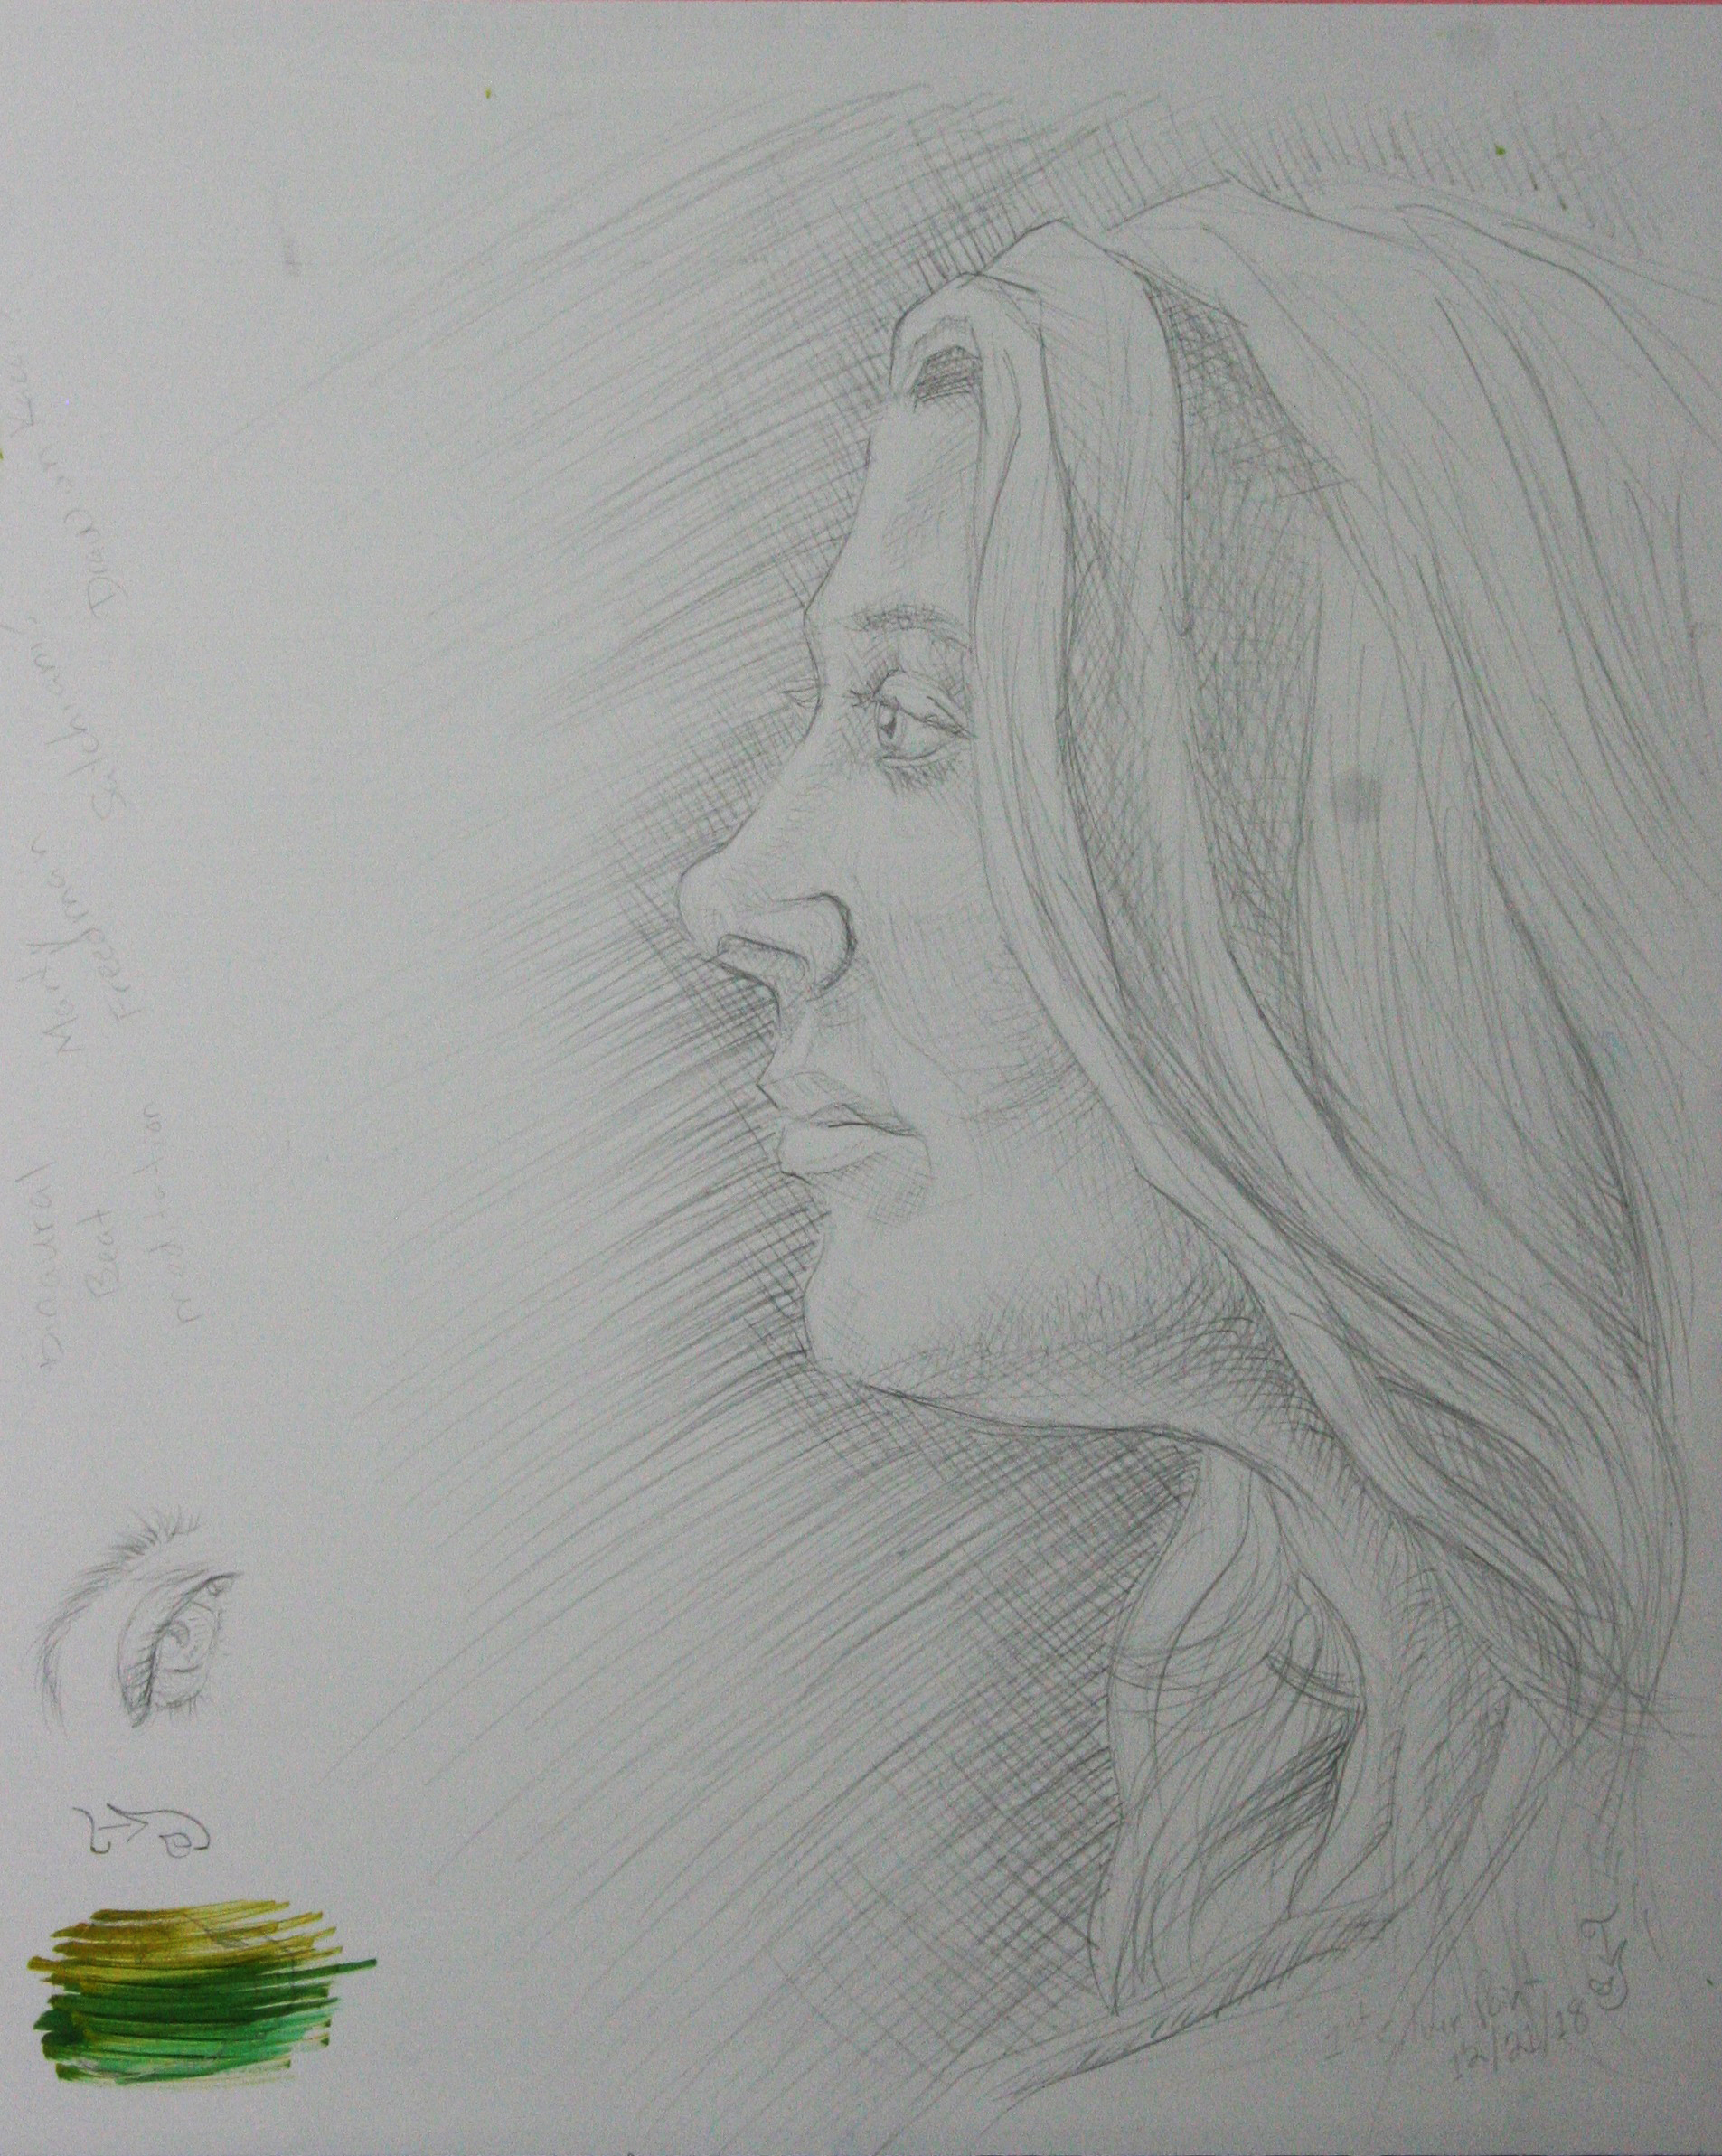 Cecelia Ivy Price did this silverpoint drawing.